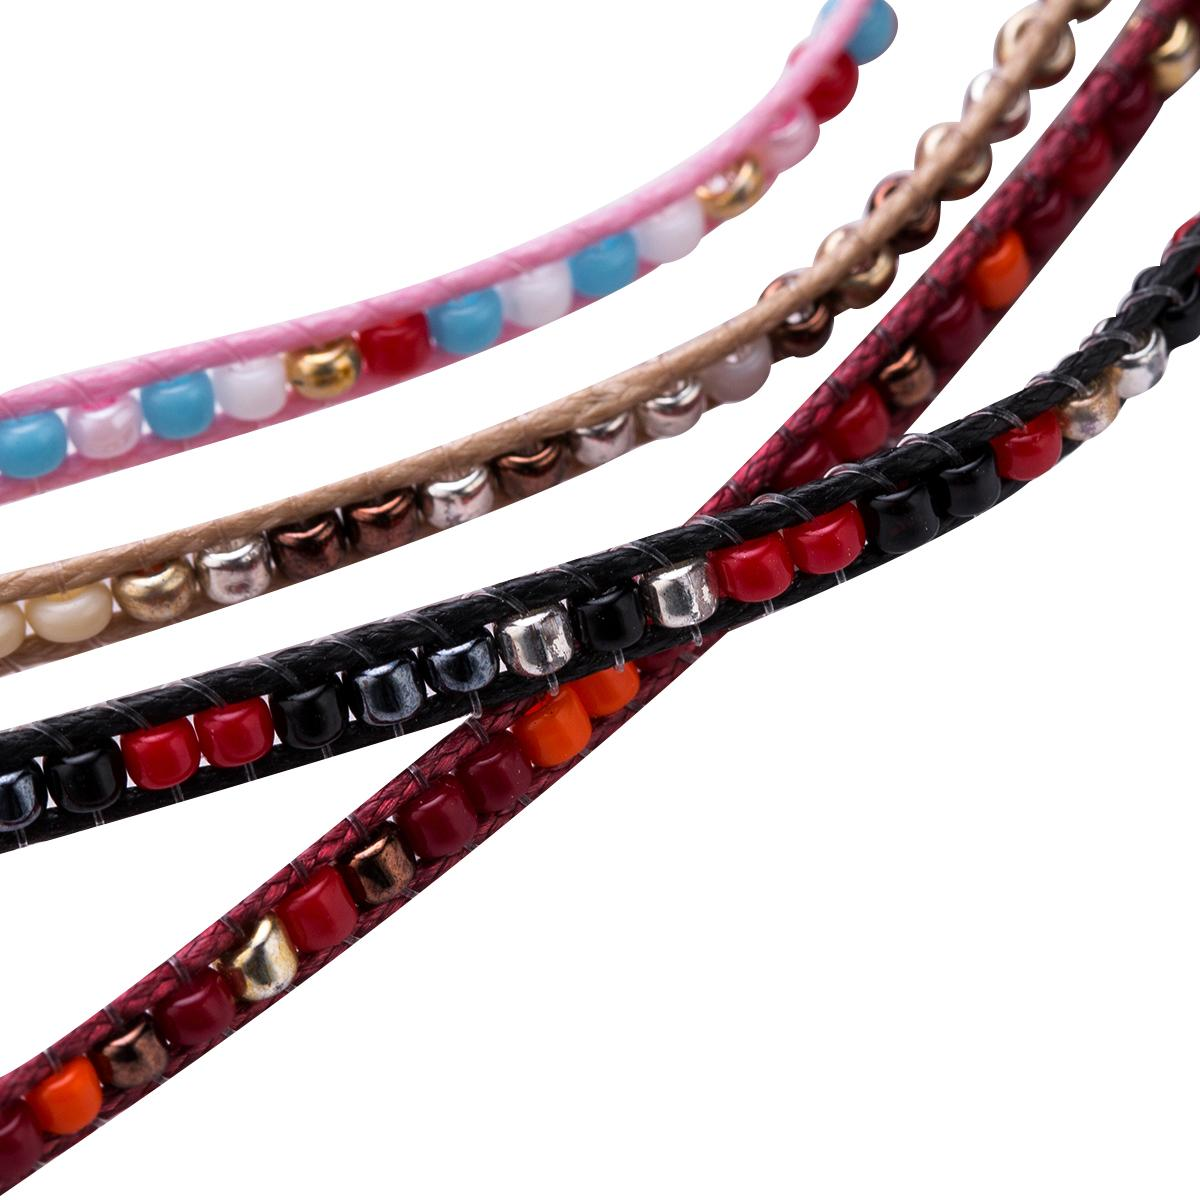 Bohemian Style Hand Braided Rope Chain Charm Small Acrylic Beads Bracelet For Women Men Adjustable Handmade Jewelry Accessories Gift